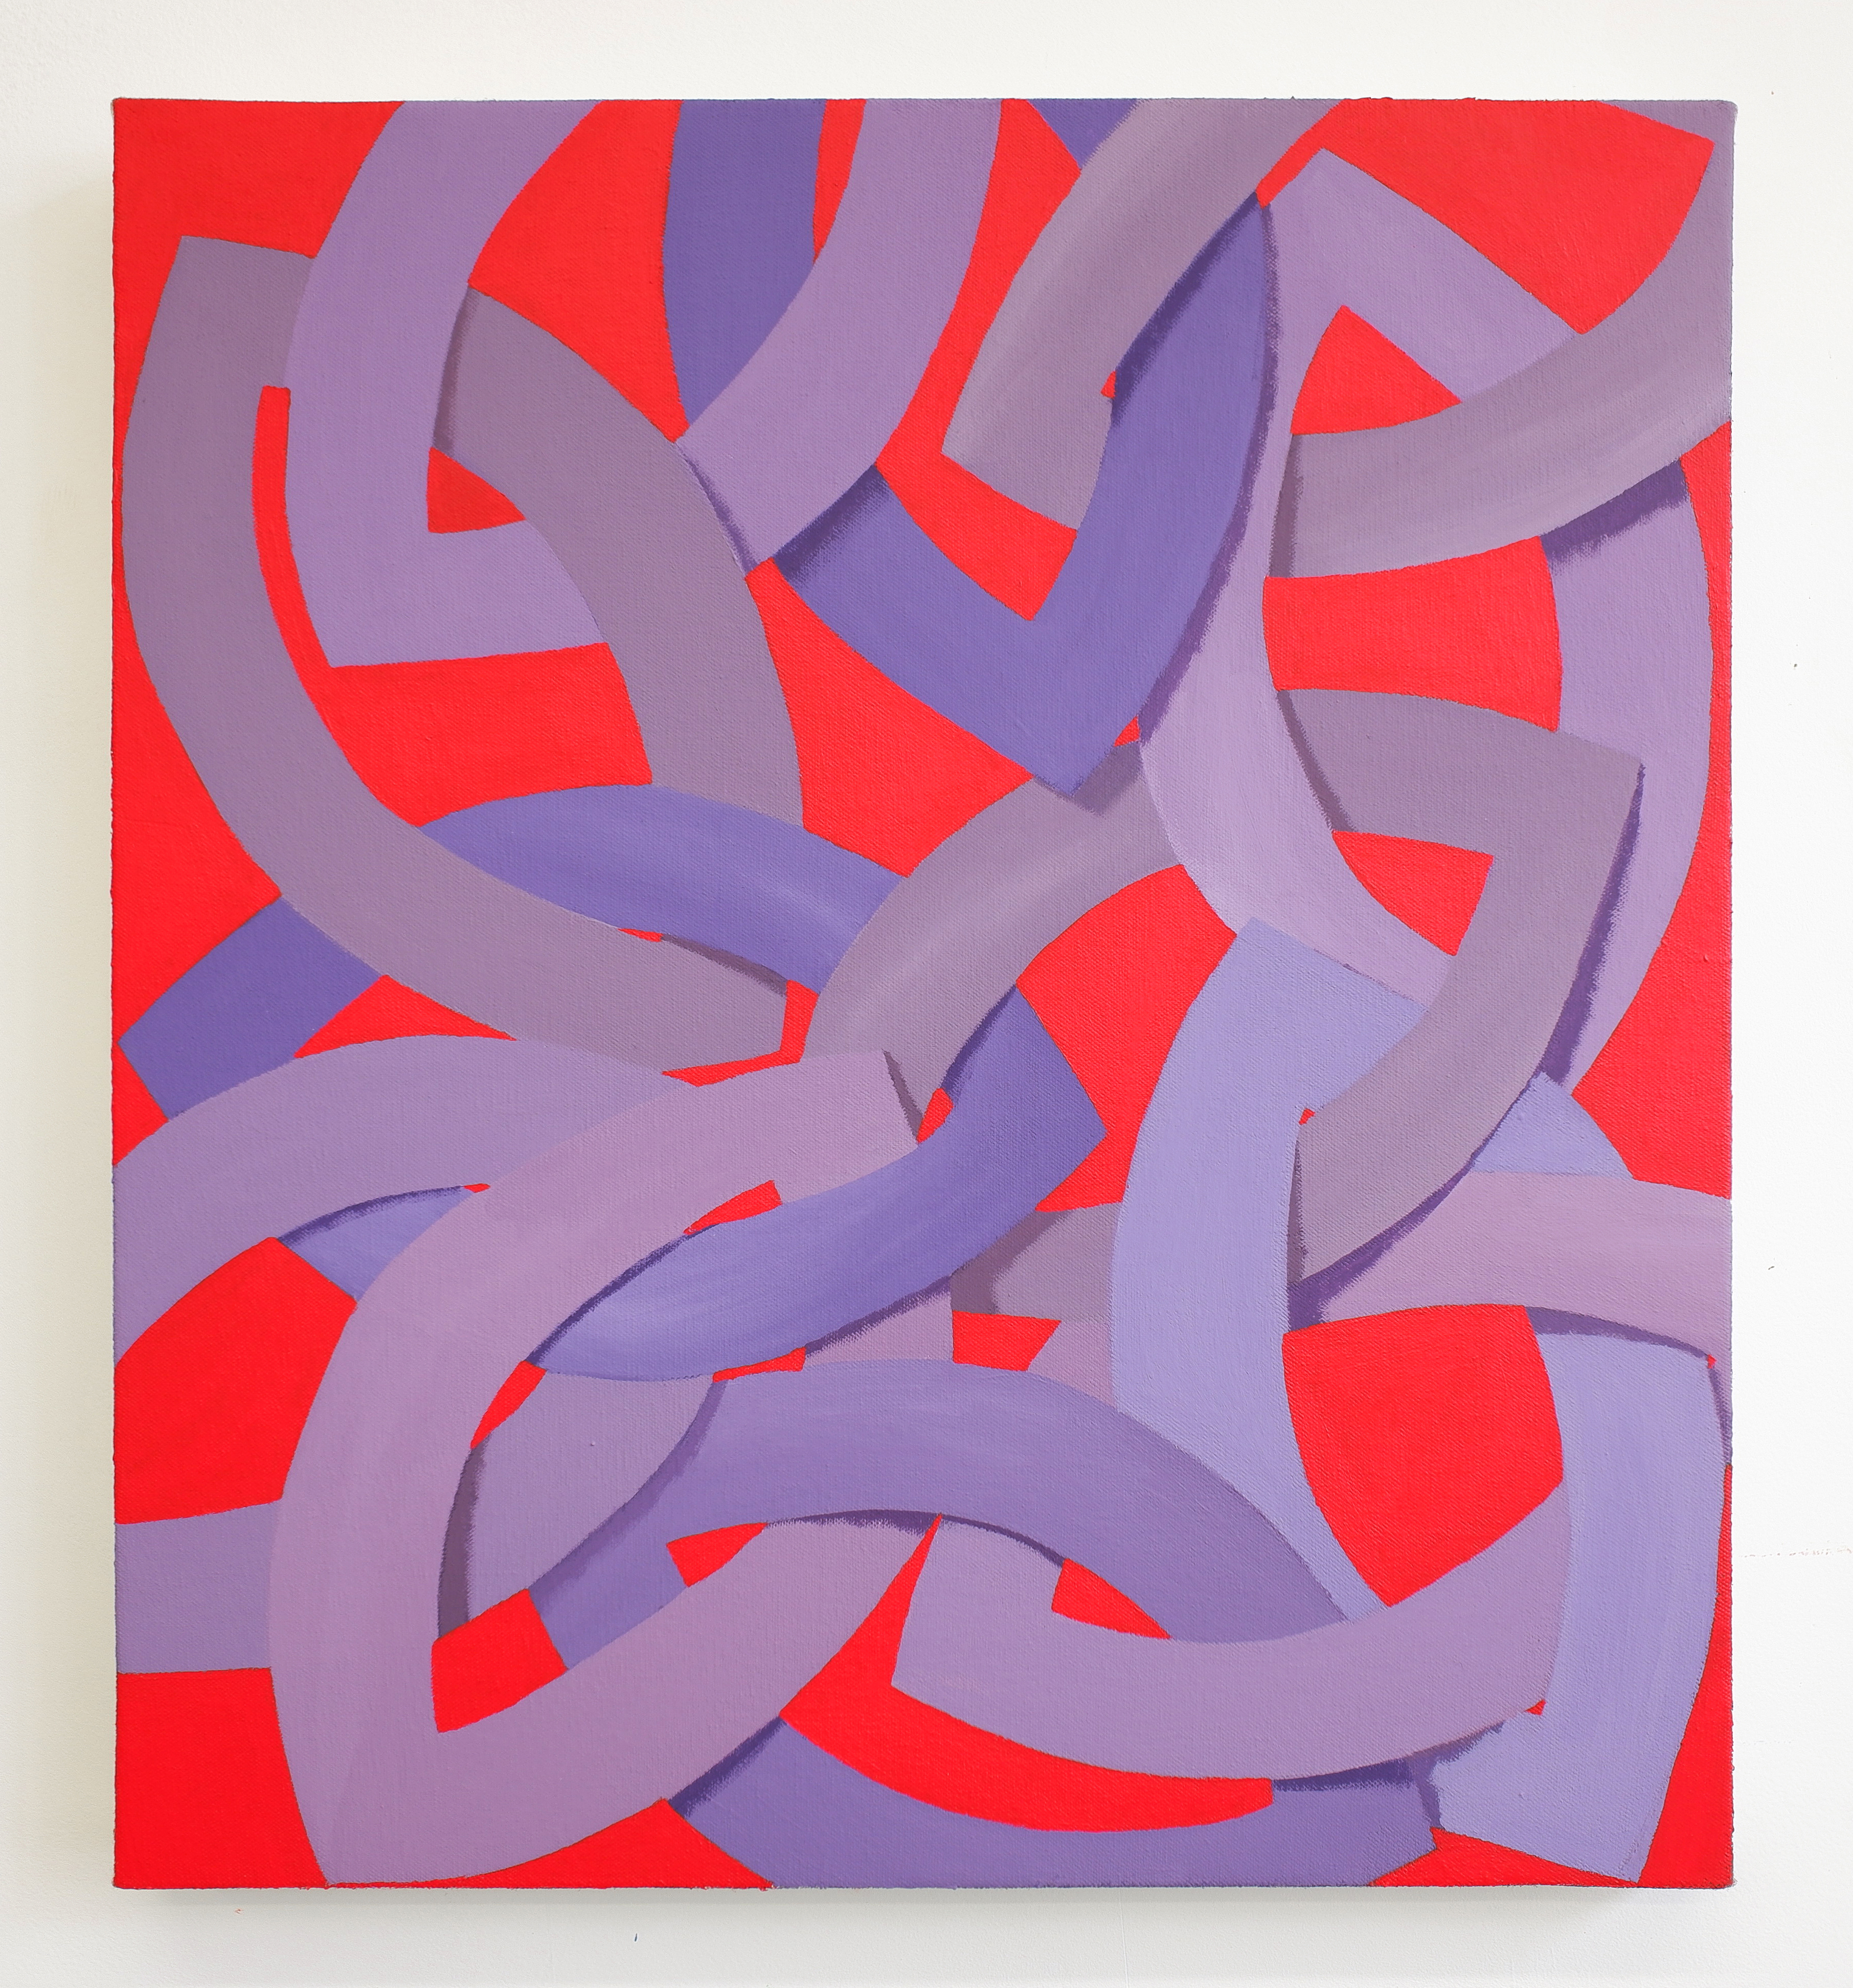 Corydon Cowansage, Purple and Red, 2019, acrylic and vinyl paint on canvas, 20 x 18 inches